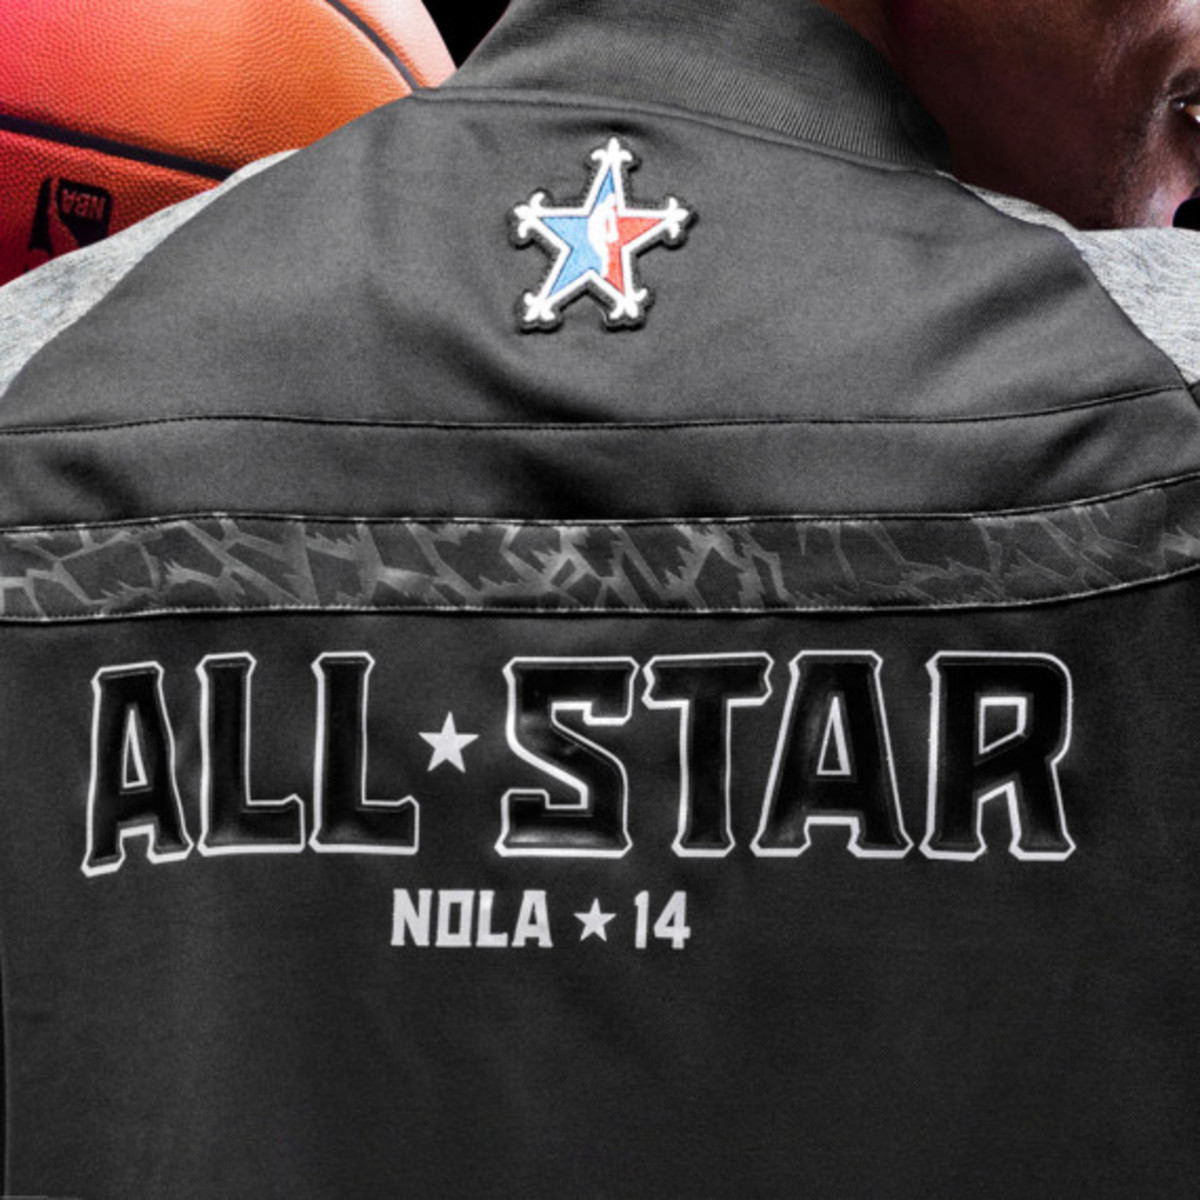 adidas-nba-2014-nba-all-star-game-uniforms-revealed-11